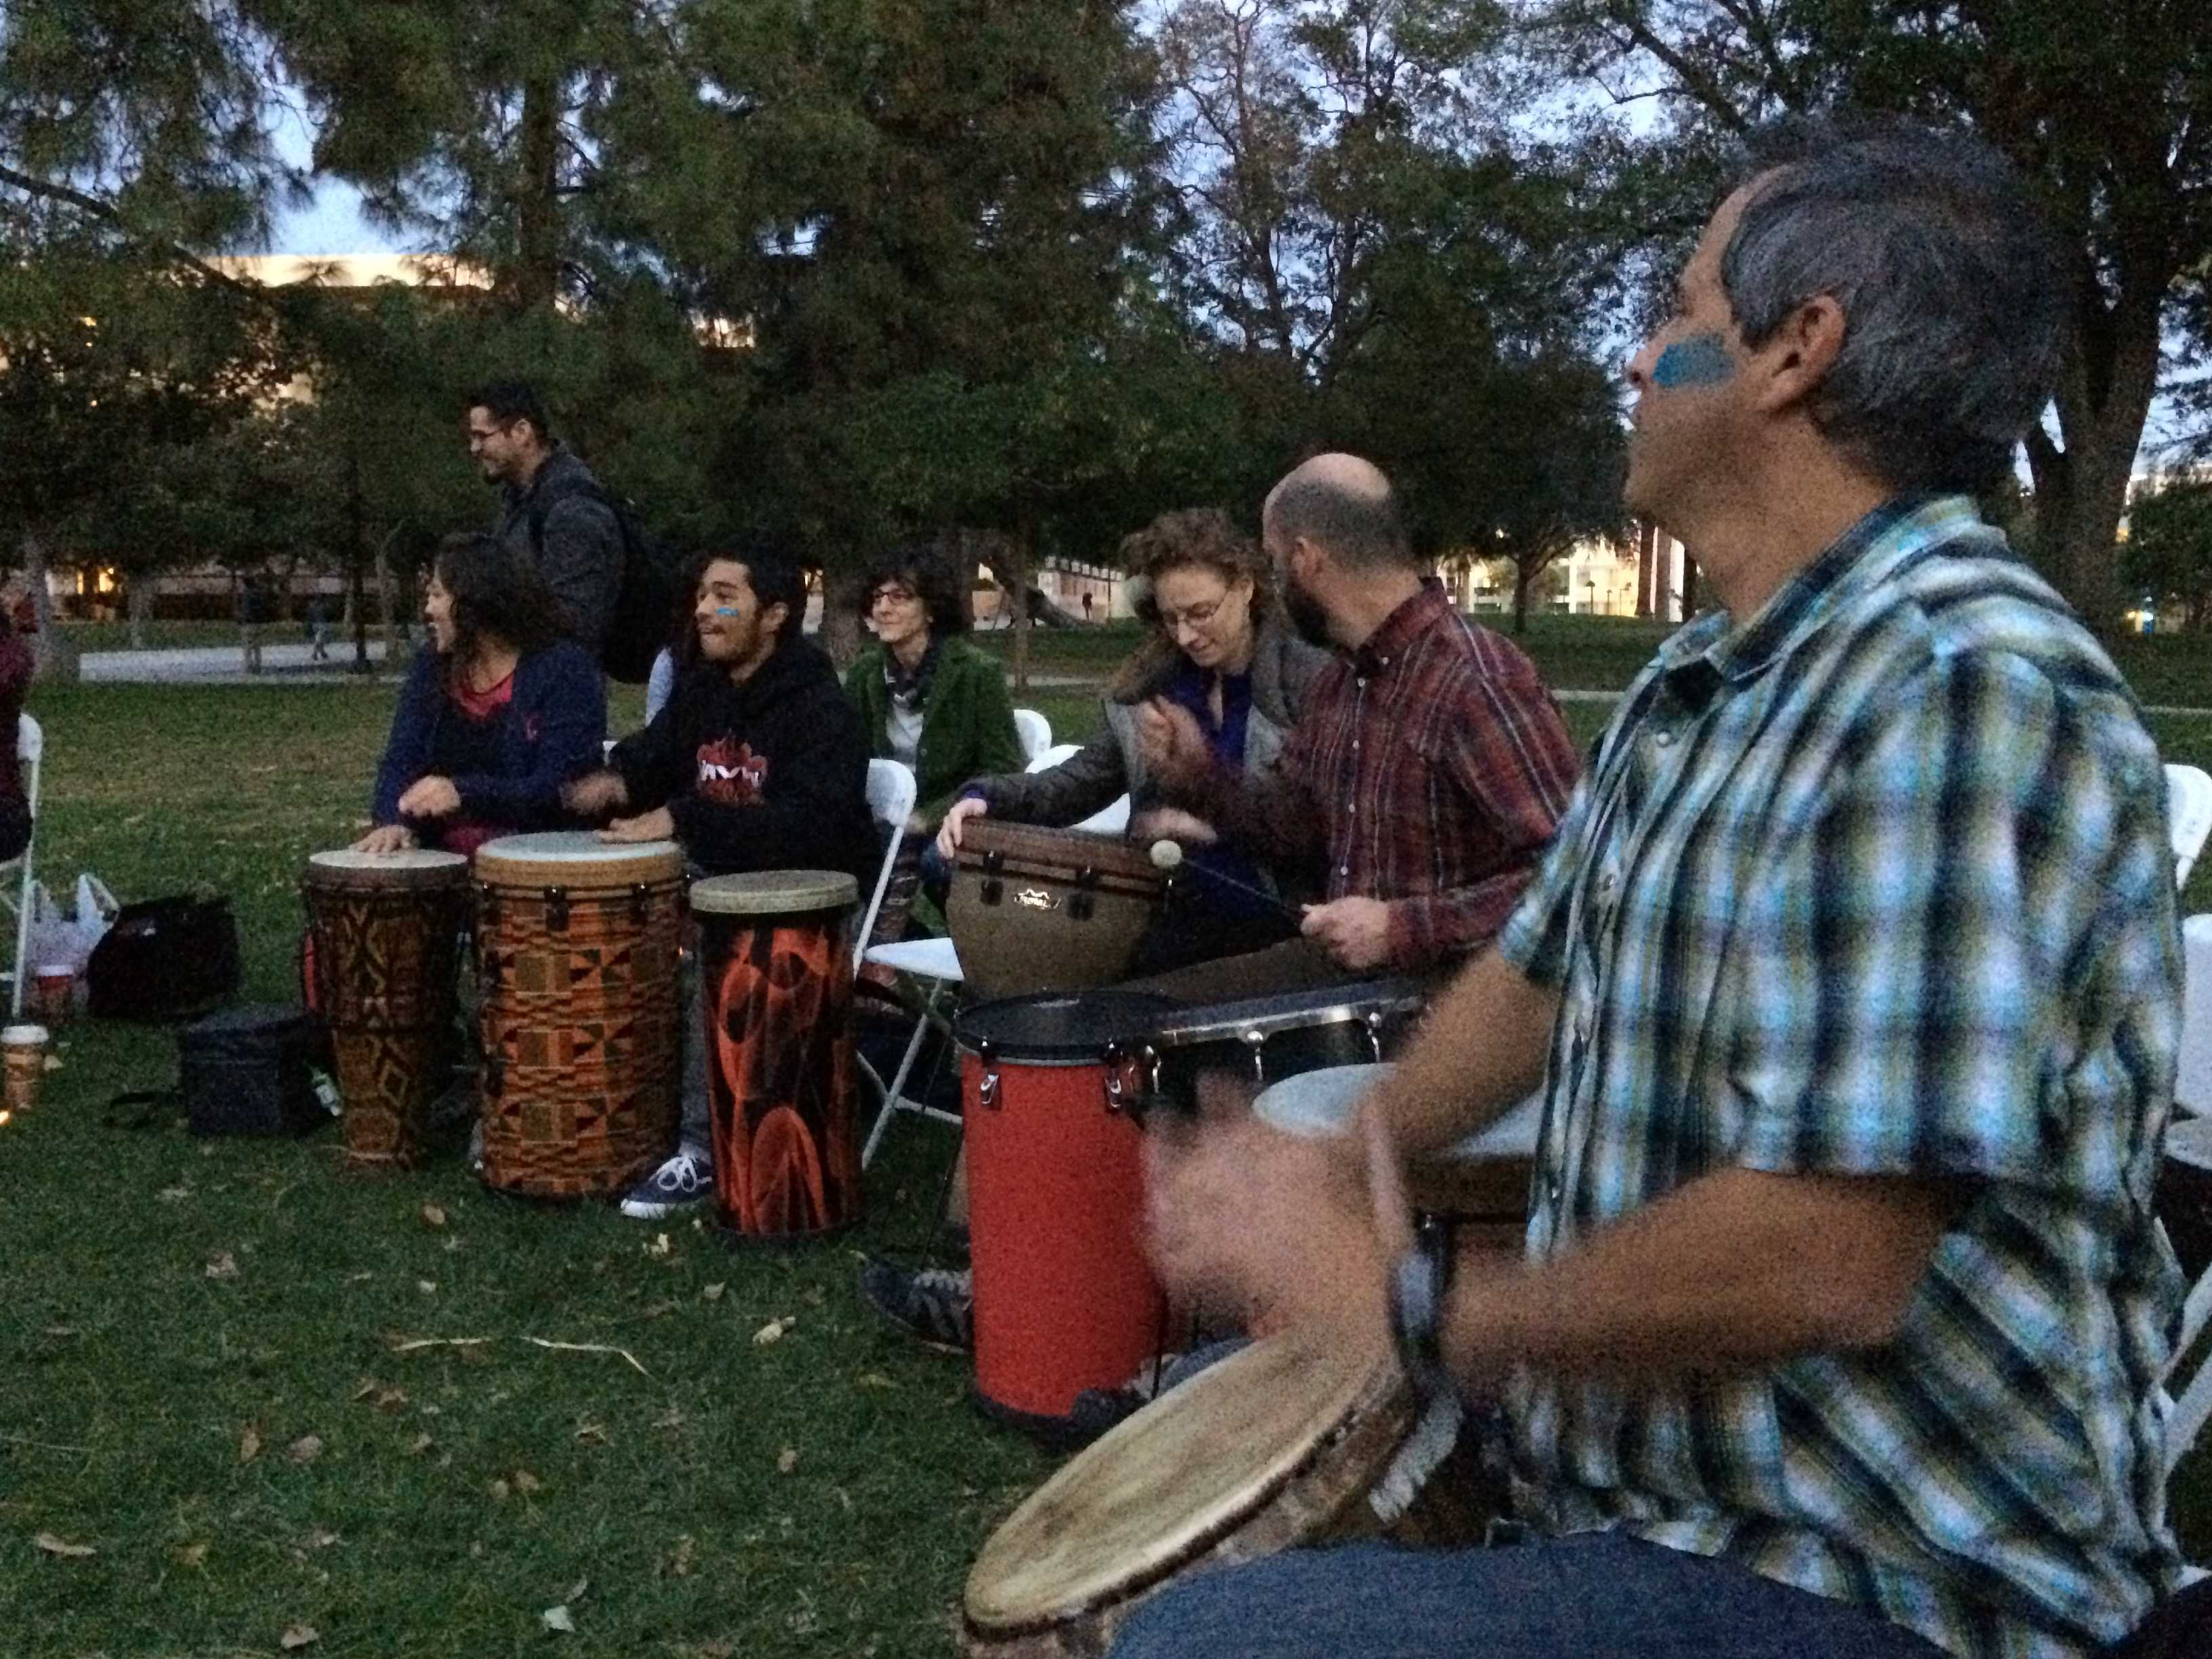 Students participate in a drum circle on the Bayramian Hall Lawn at CSUN on Monday, Nov. 17, 2014. Photo credit: Melissa Fumbark/The Sundial.